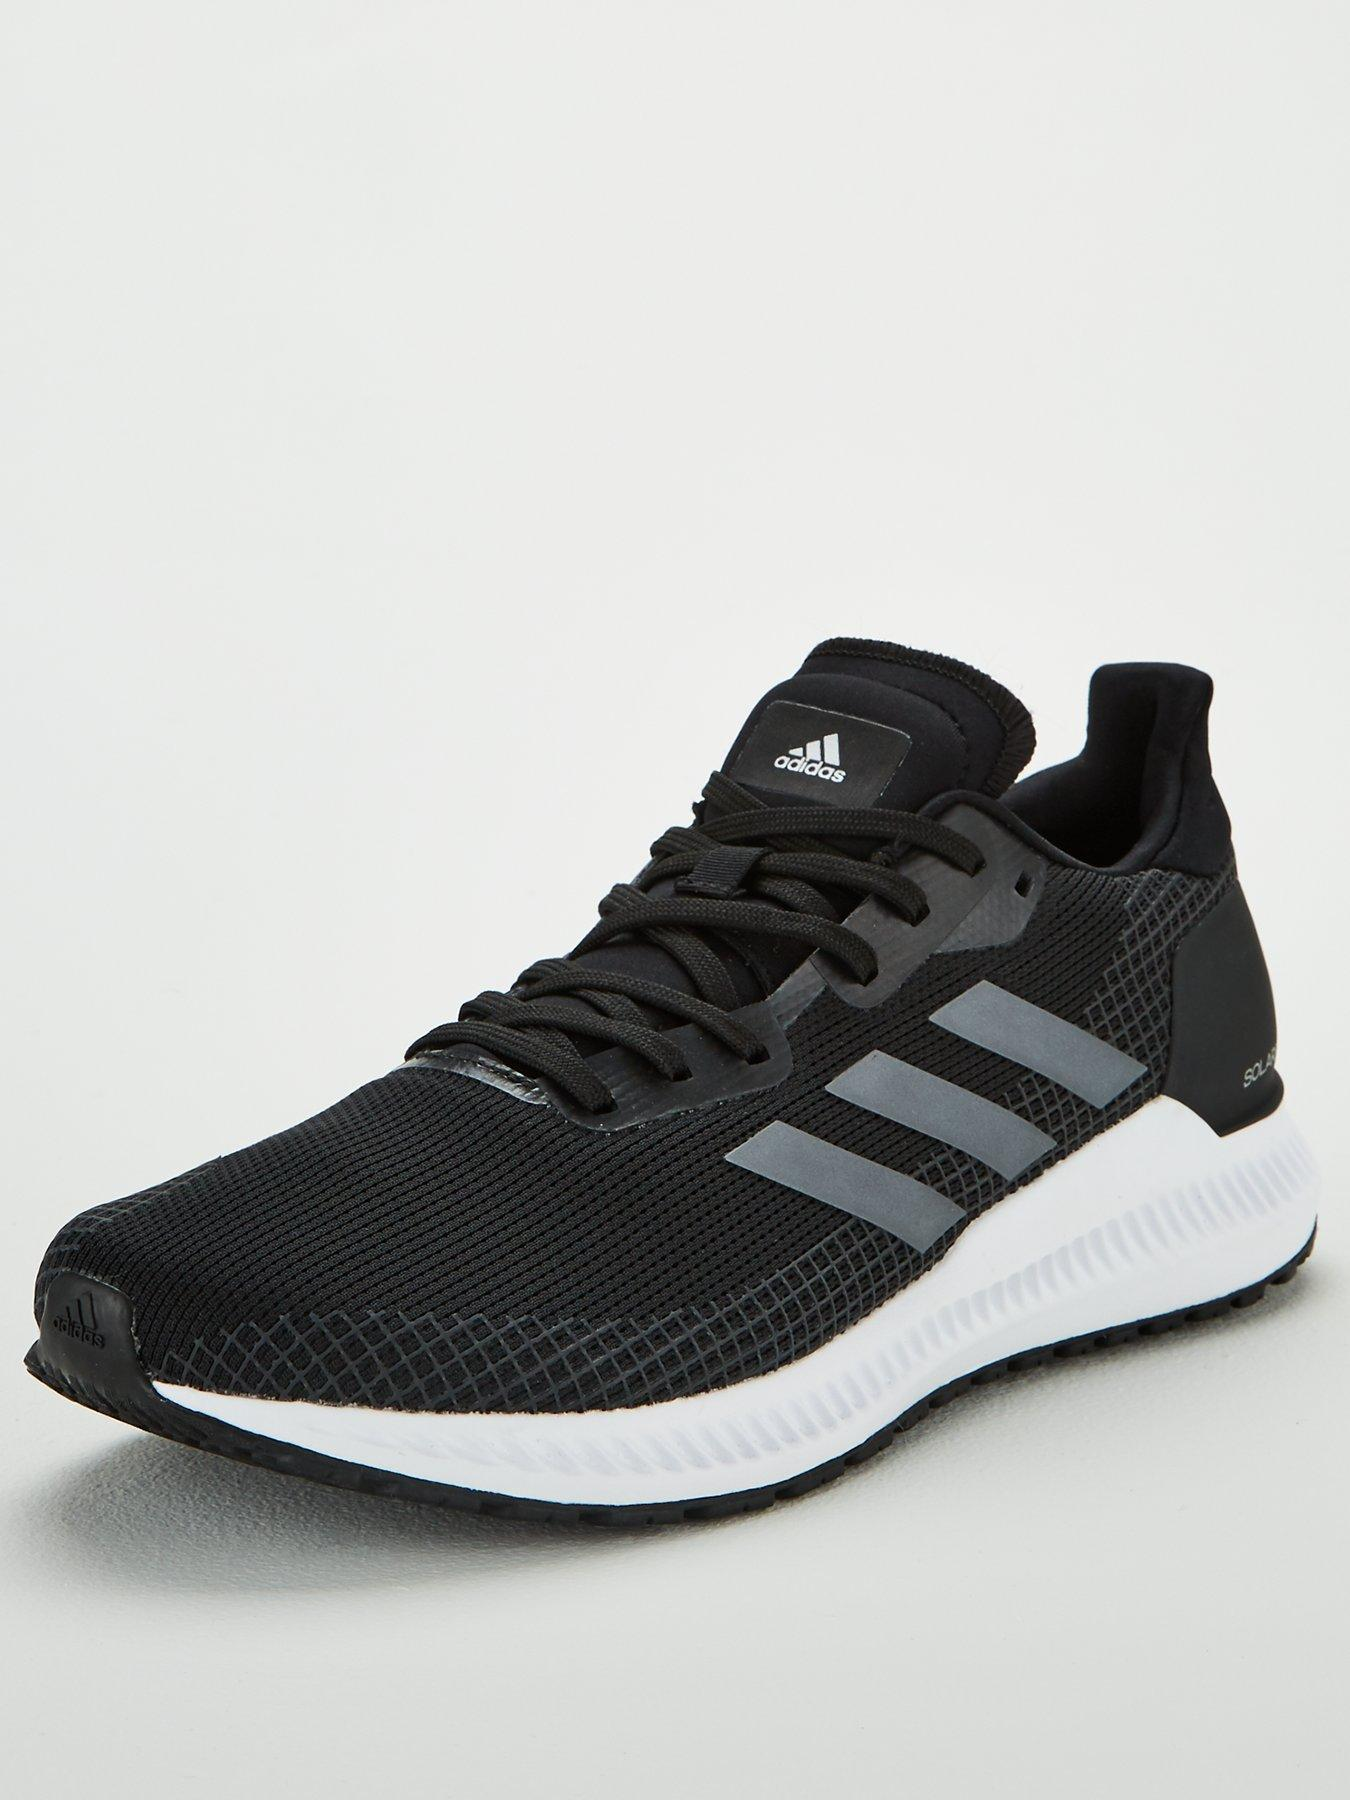 Mens Trainers | Shop Mens trainers | Very.co.uk